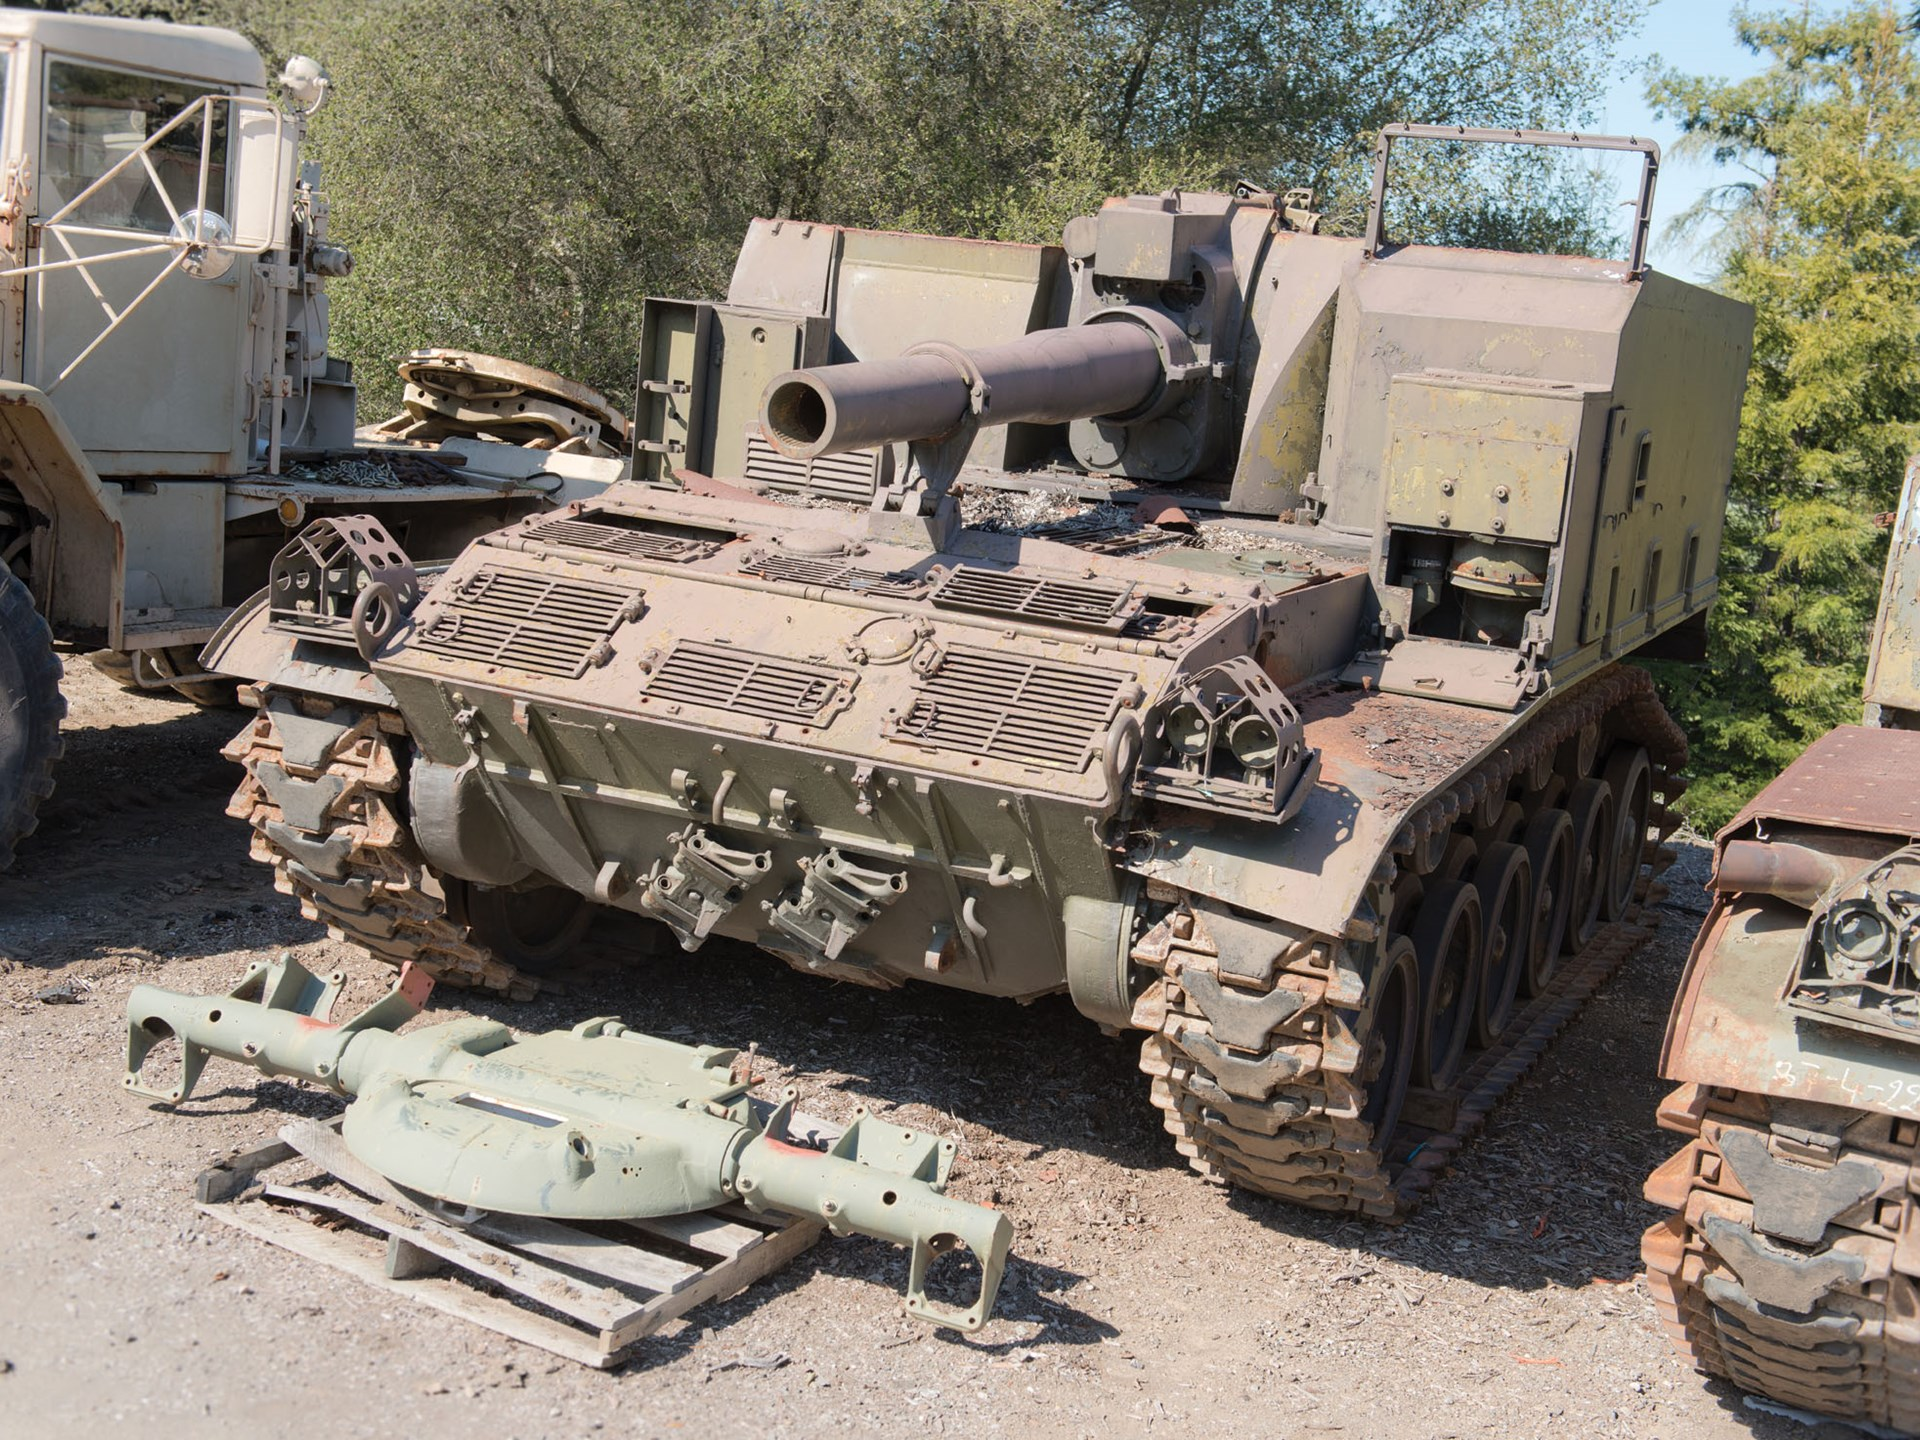 RM Sotheby's - M44 155-mm Self-Propelled Howitzer | The